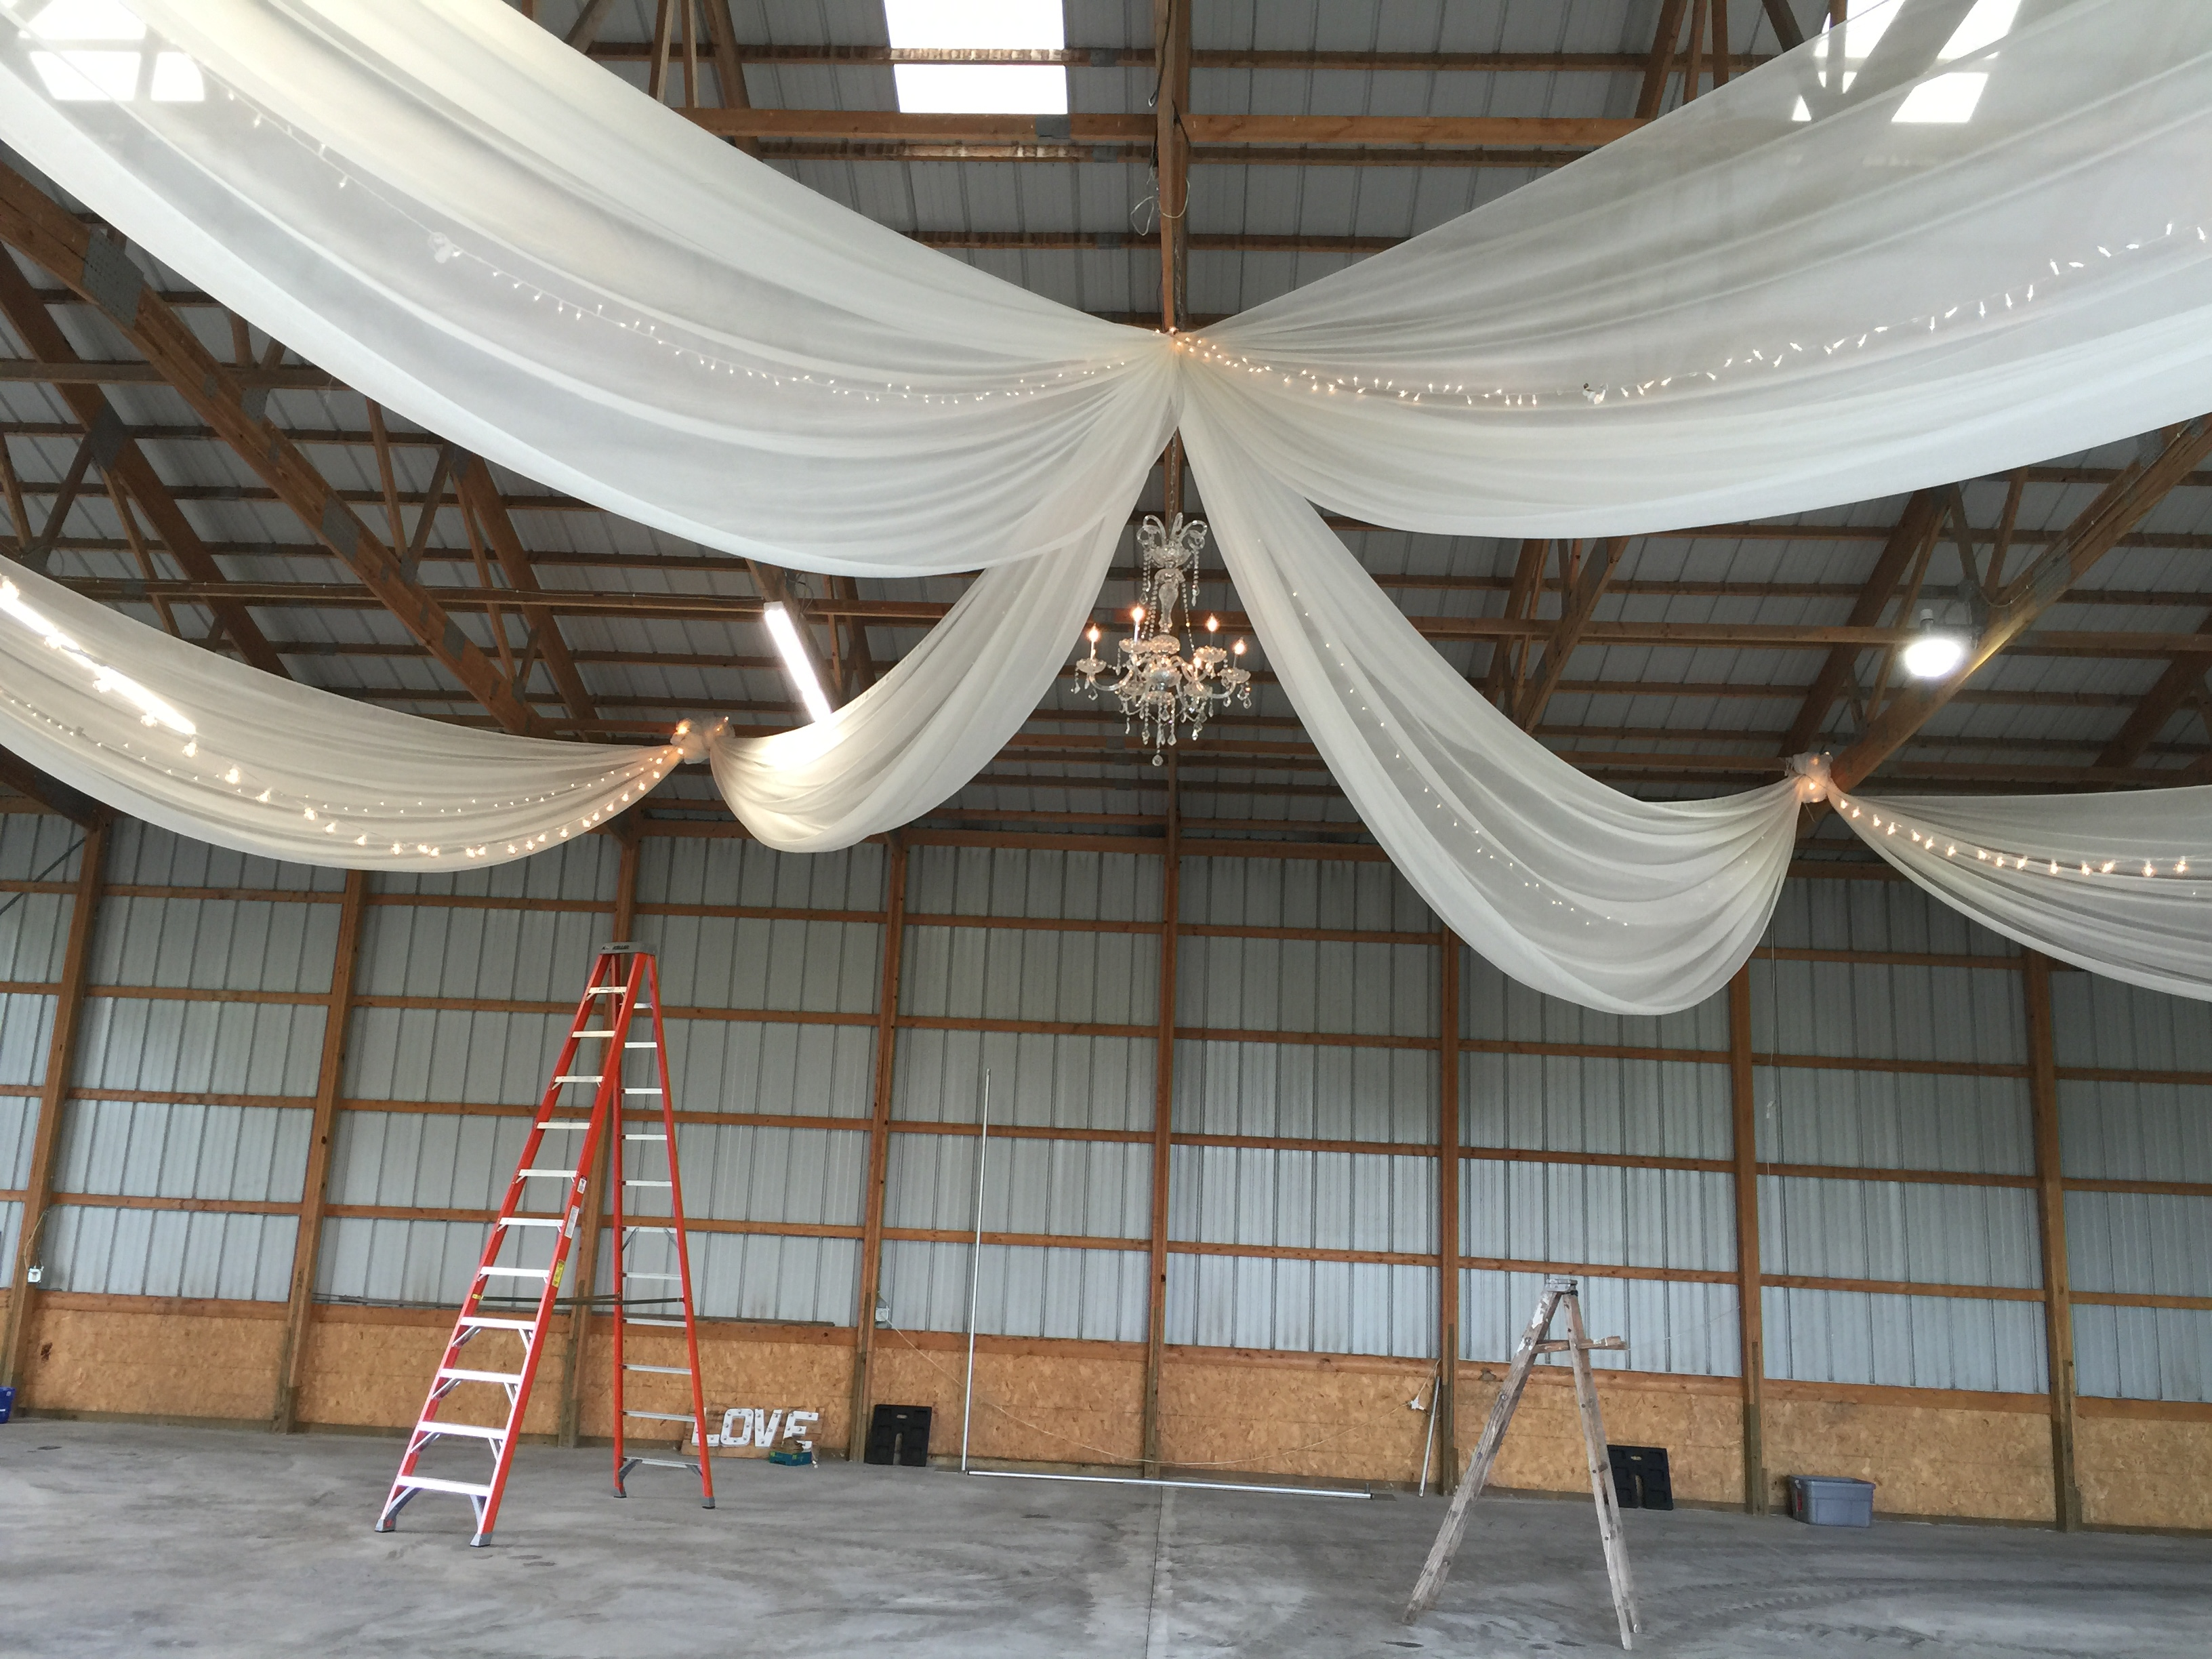 miami draping drape mood ceiling event lauderdale florida rental solaris pipe outdoorlighting ft and ceilings south